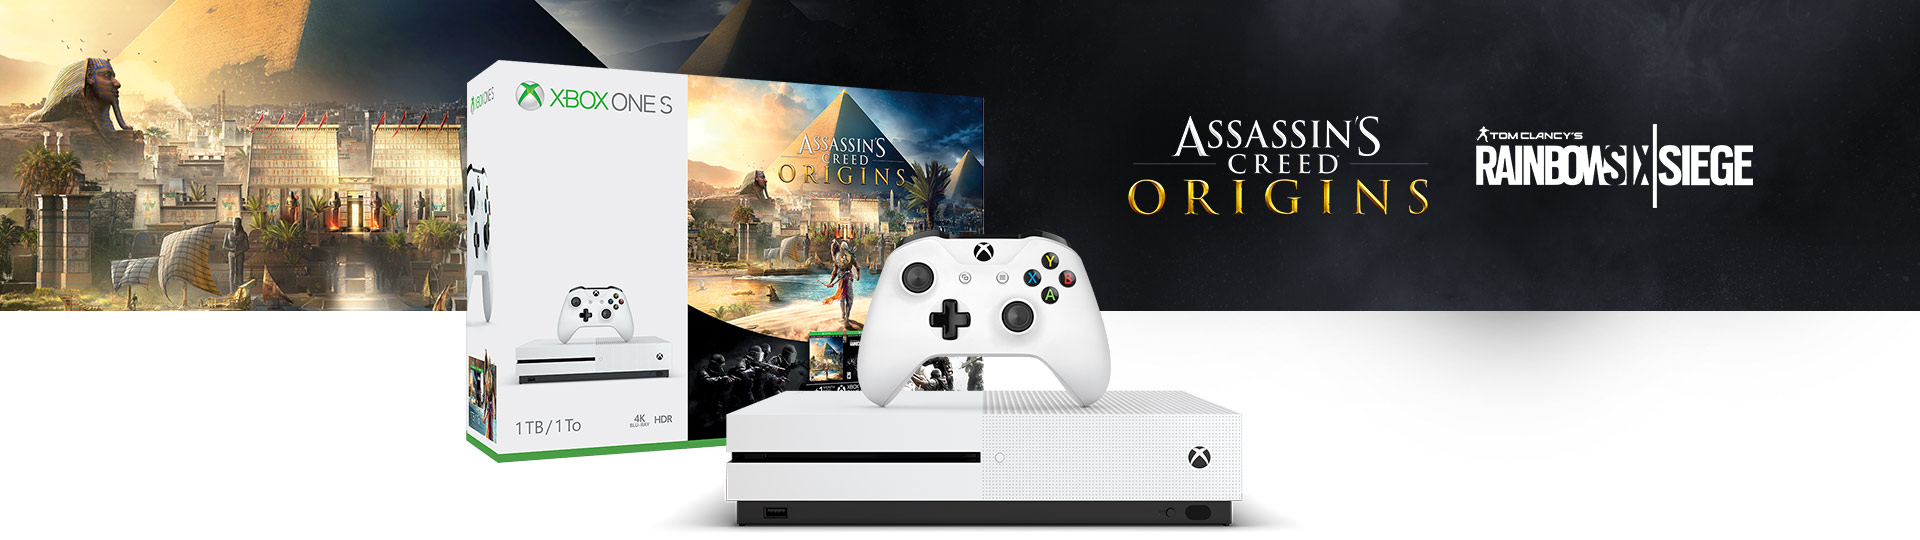 Pack Bonus Xbox One S (1 To) + Assassin's Creed : Origins